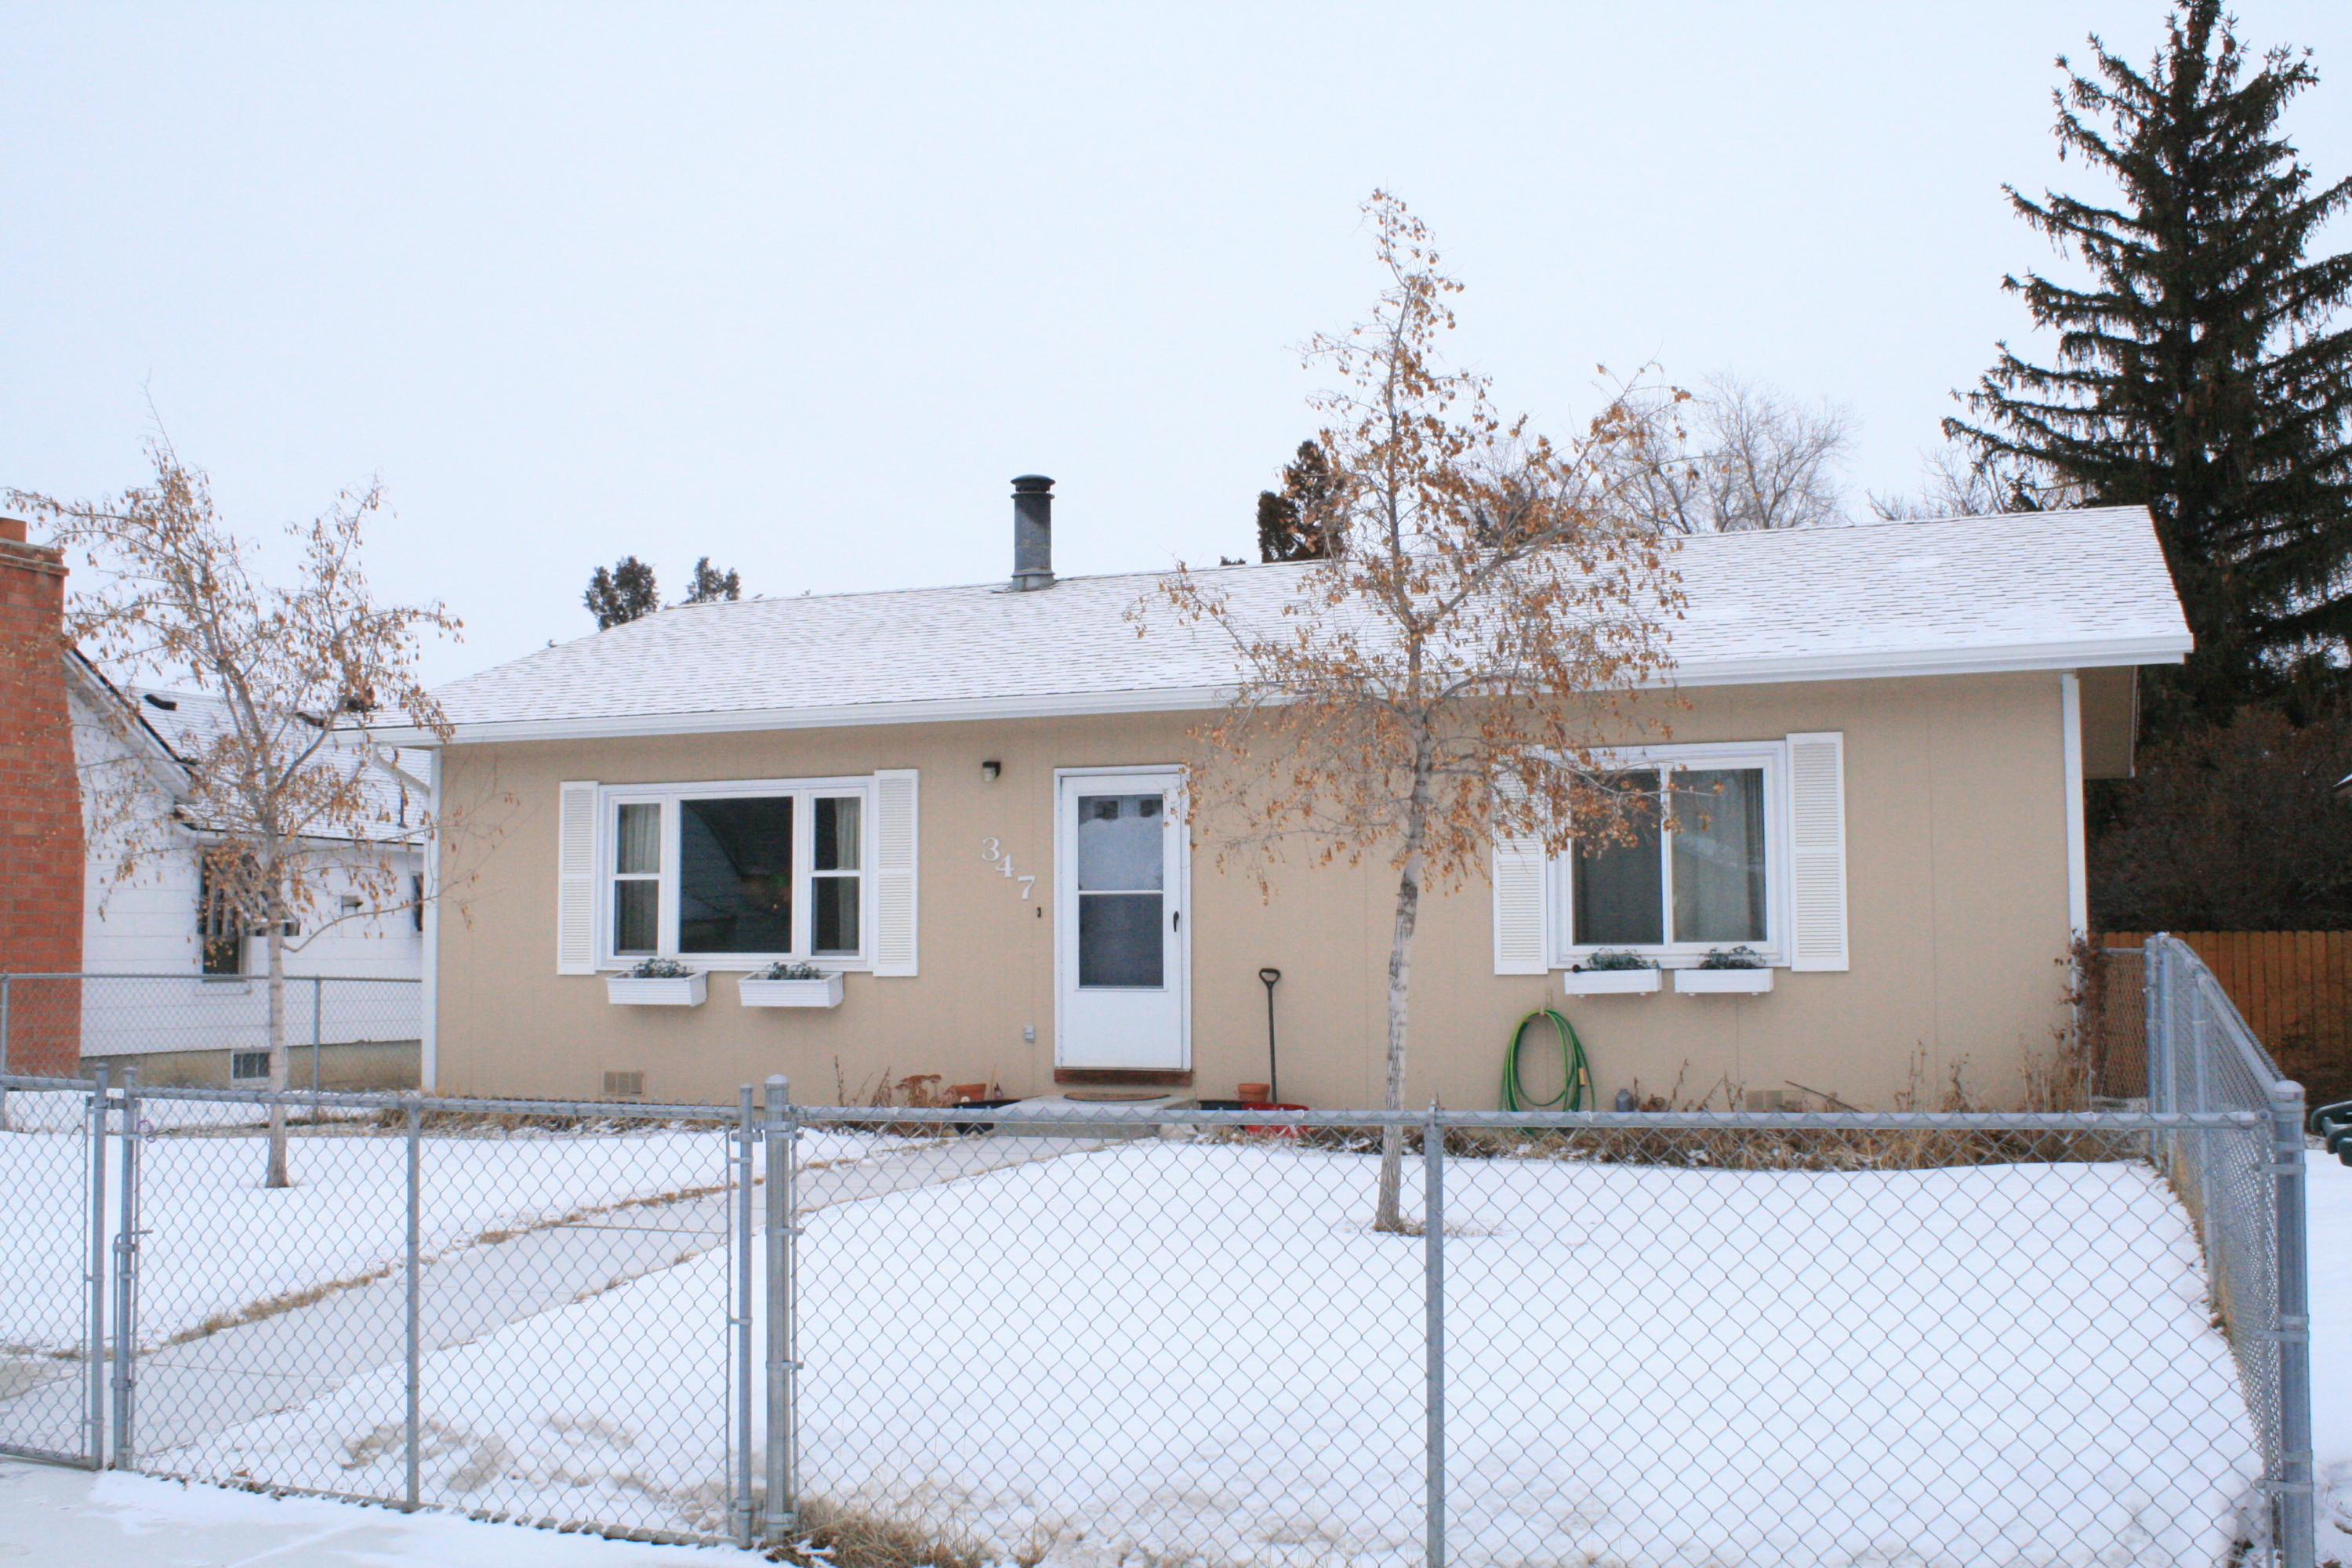 347 Wyoming Avenue, Sheridan, Wyoming 82801, 2 Bedrooms Bedrooms, ,1 BathroomBathrooms,Residential,For Sale,Wyoming,19-145